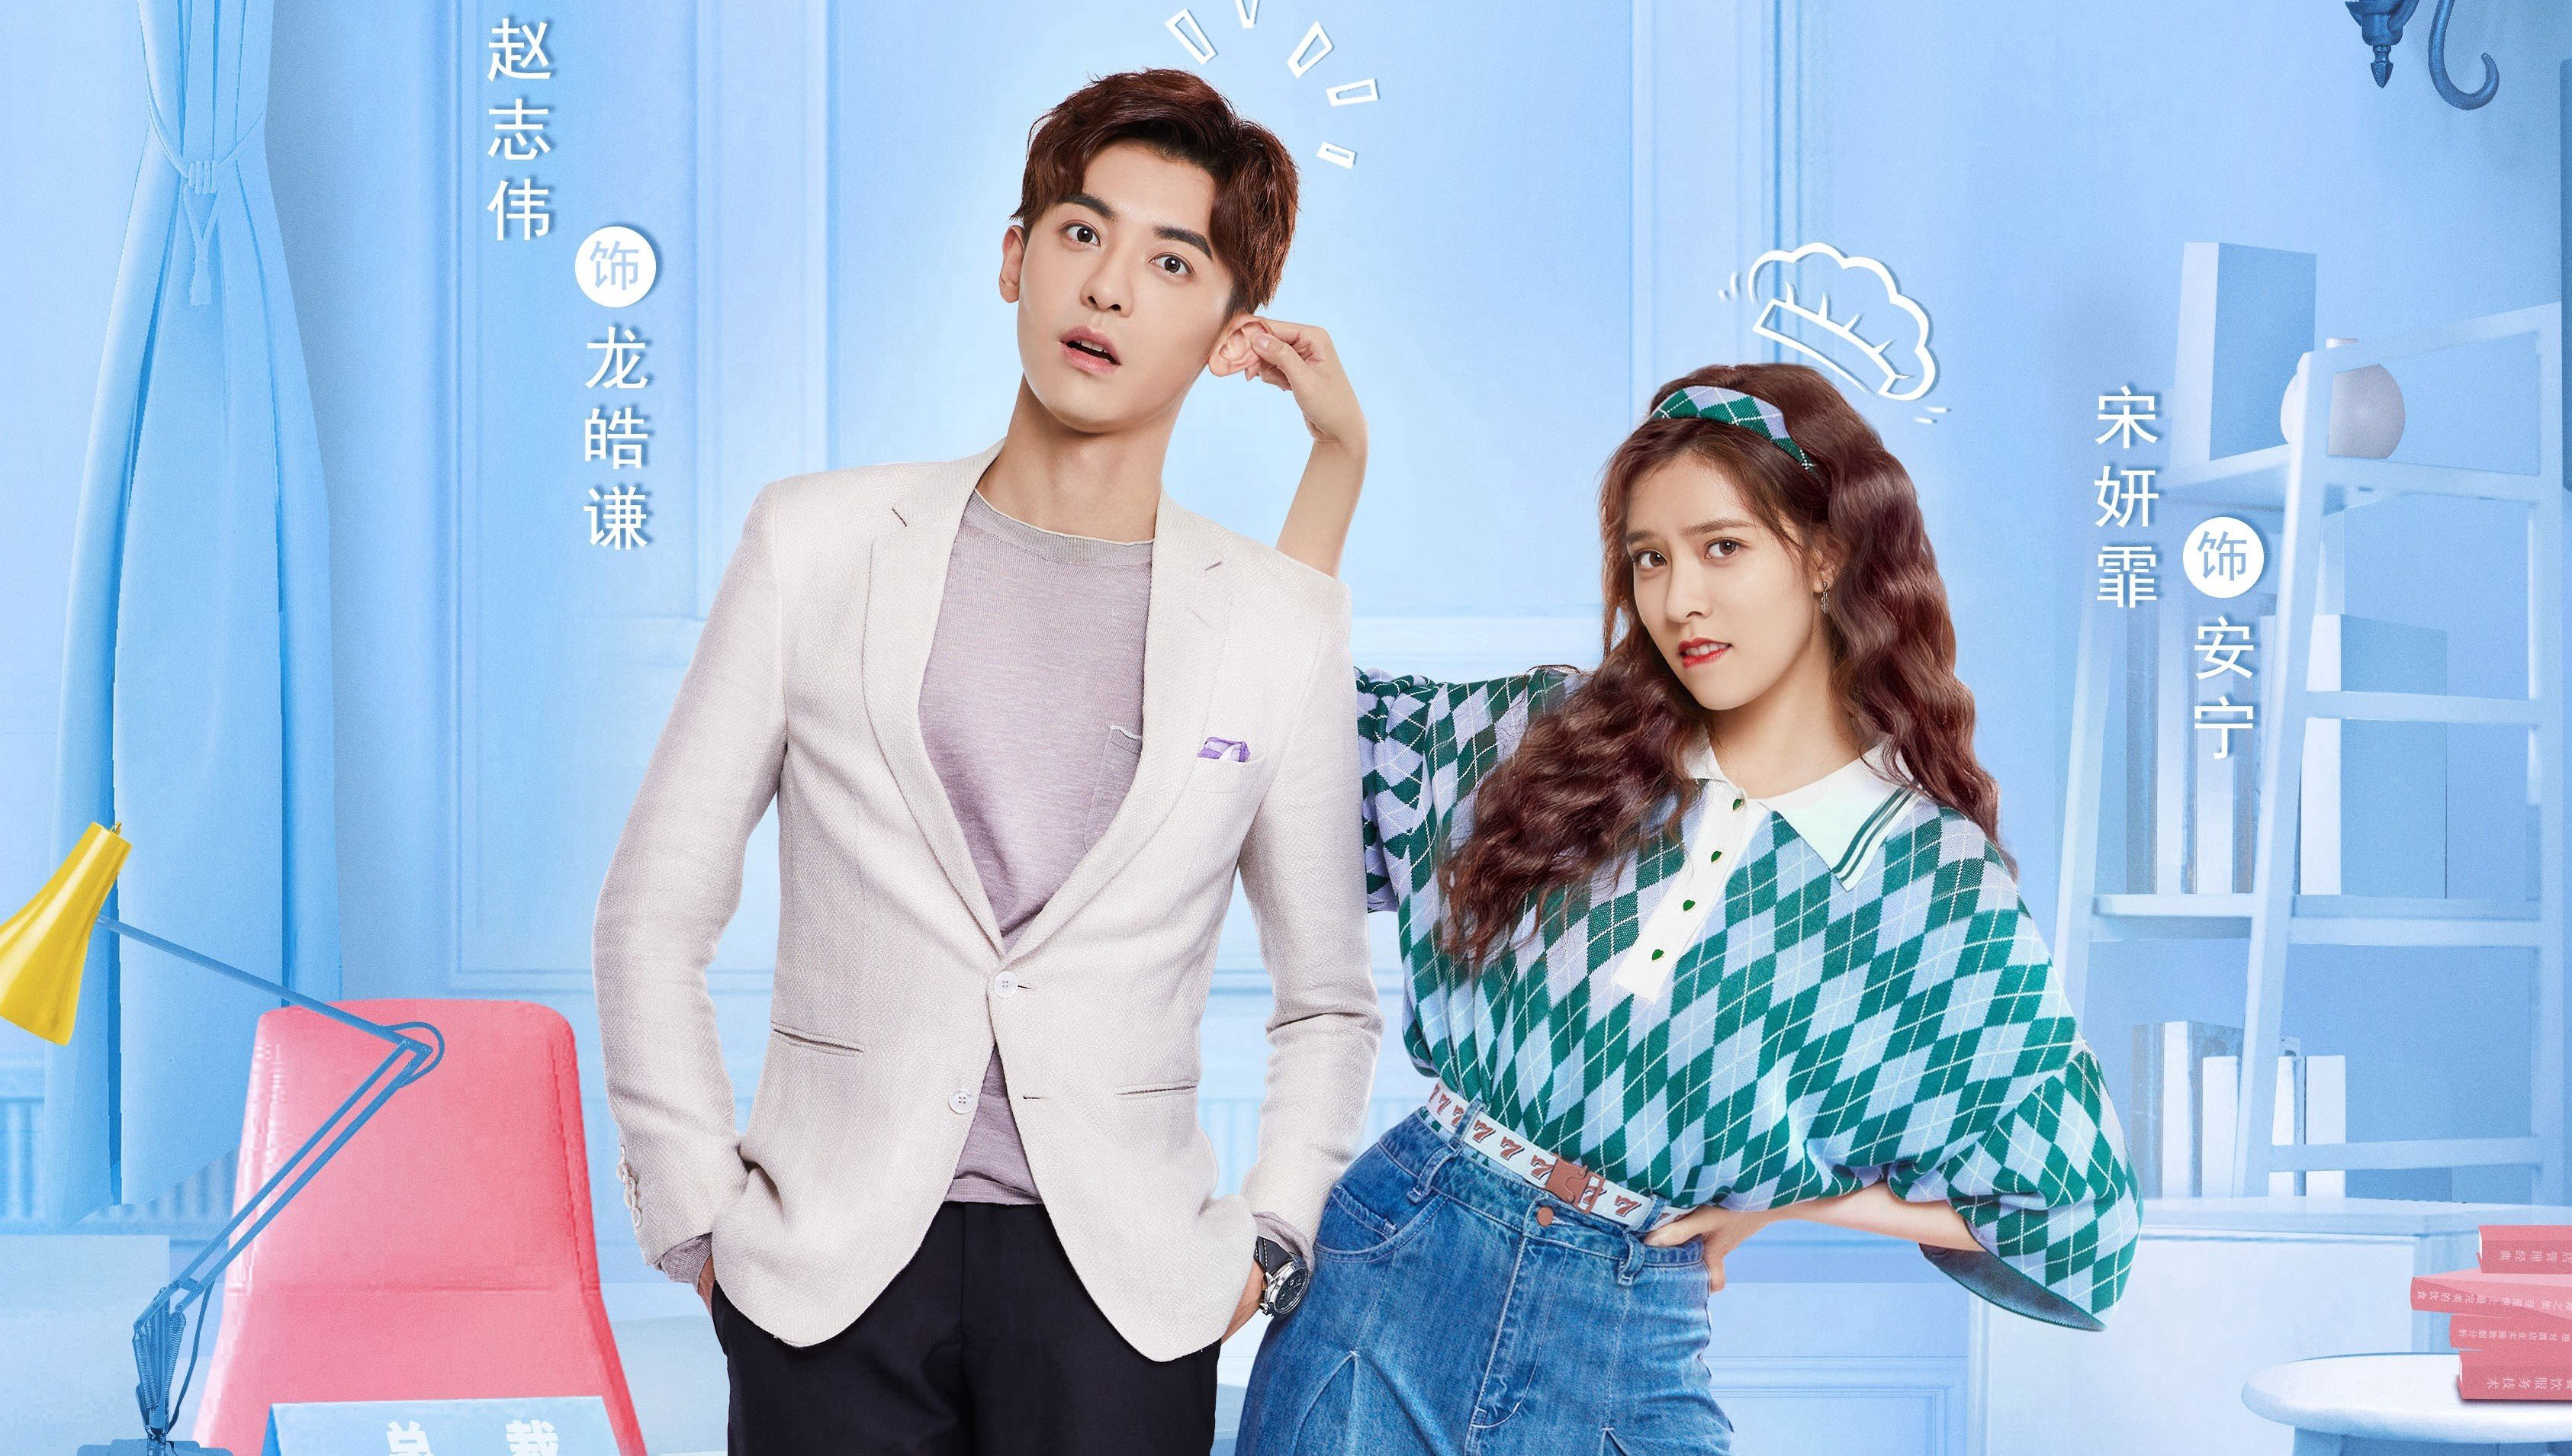 Touch Kdrama 2020 Ep 2 Sub Espanol Touch Kdrma 2020 Episode